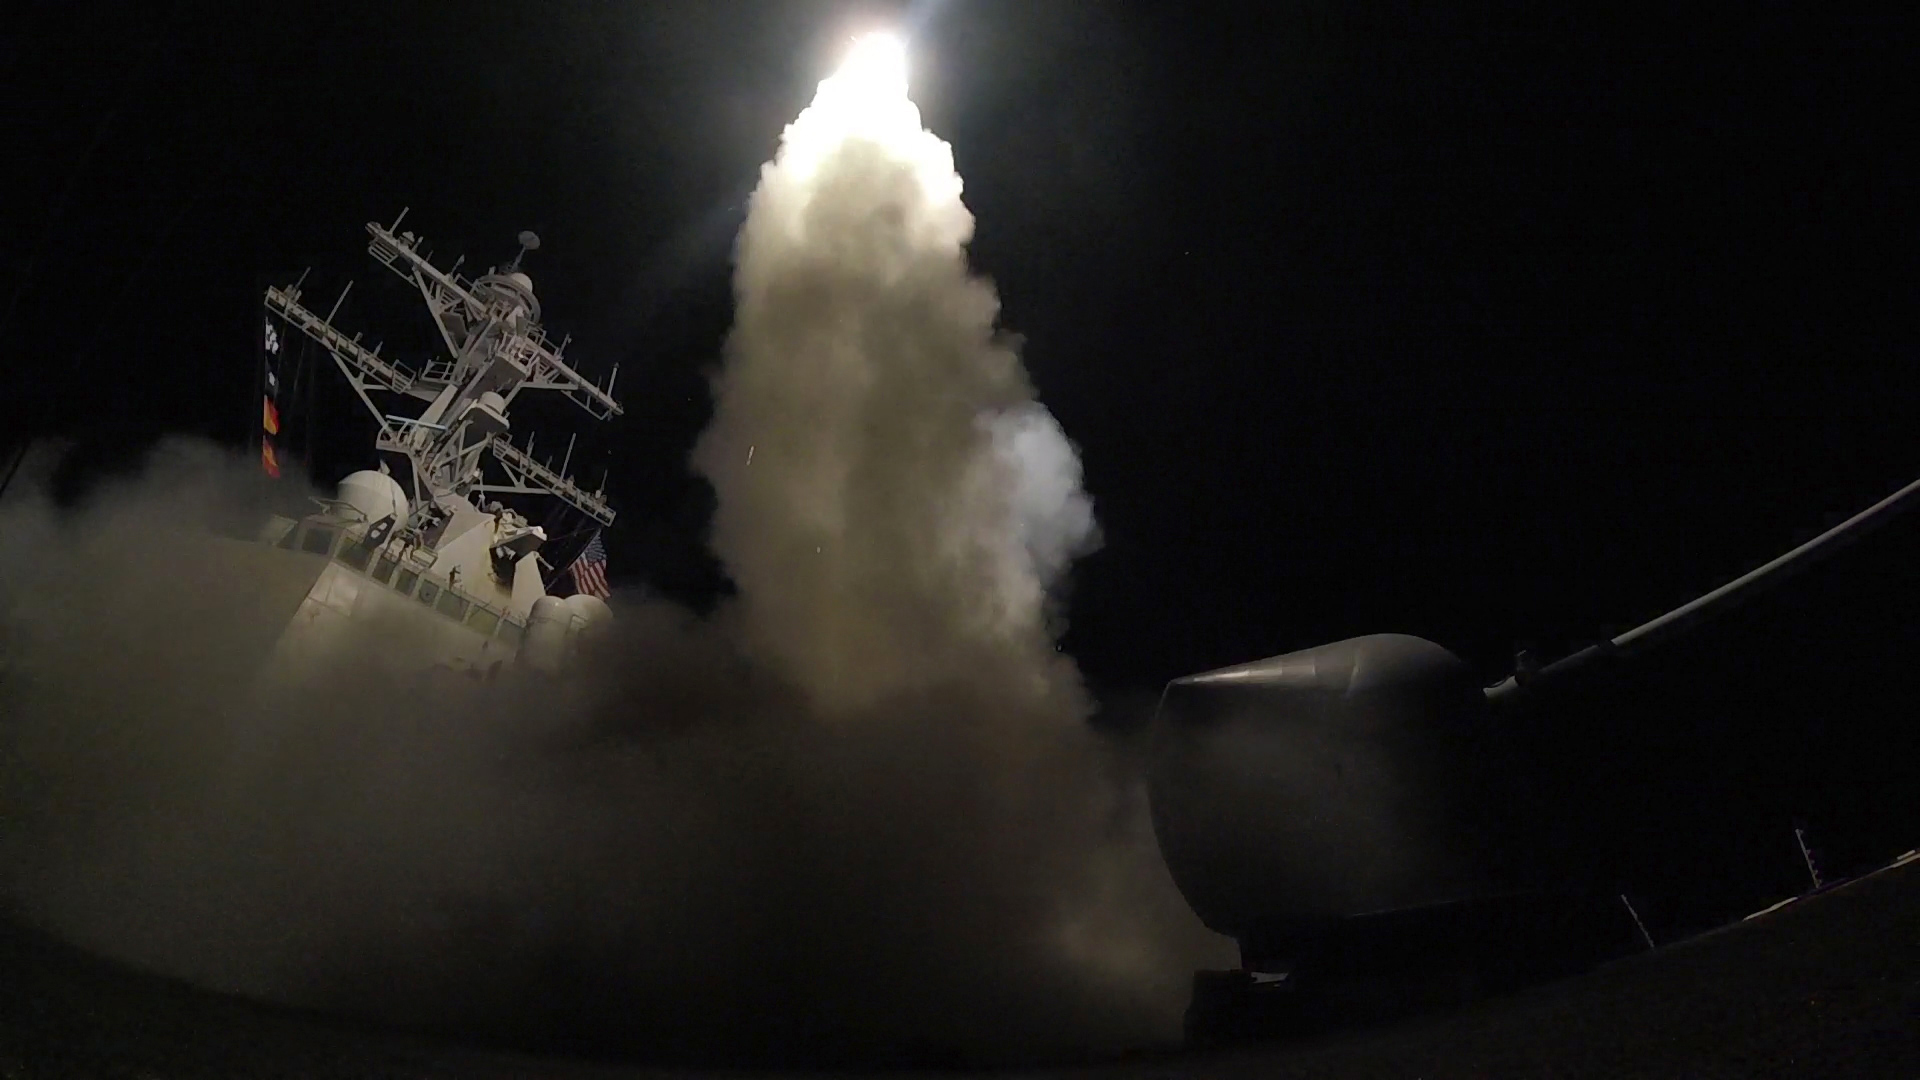 The United States blasted a Syrian air base with a barrage of cruise missiles in fiery retaliation for this week's gruesome chemical weapons attack against civilians. (Mass Communication Specialist 3rd Class Ford Williams/U.S. Navy via AP)